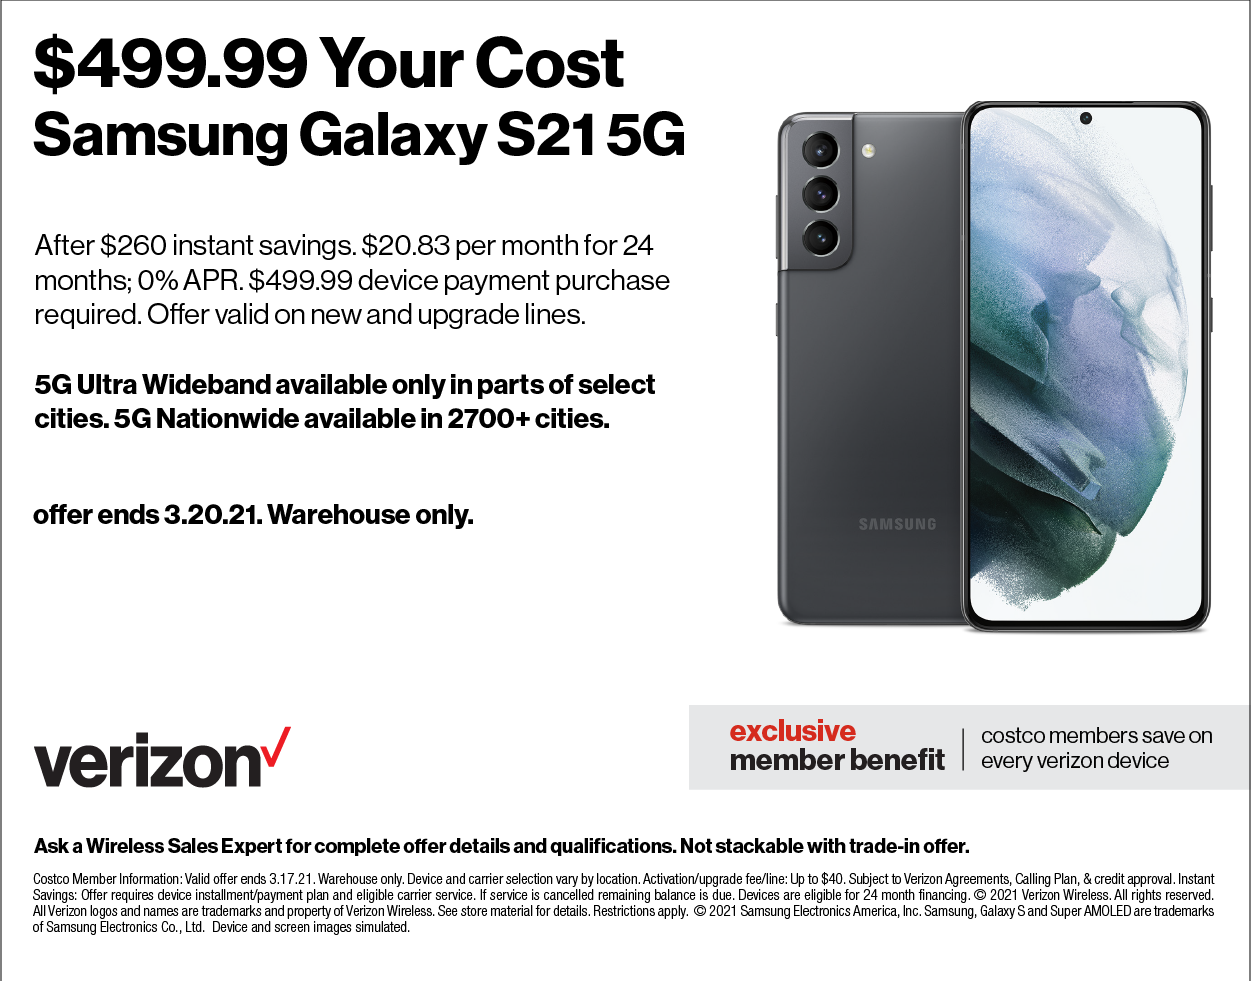 Verizon Samsung Offer